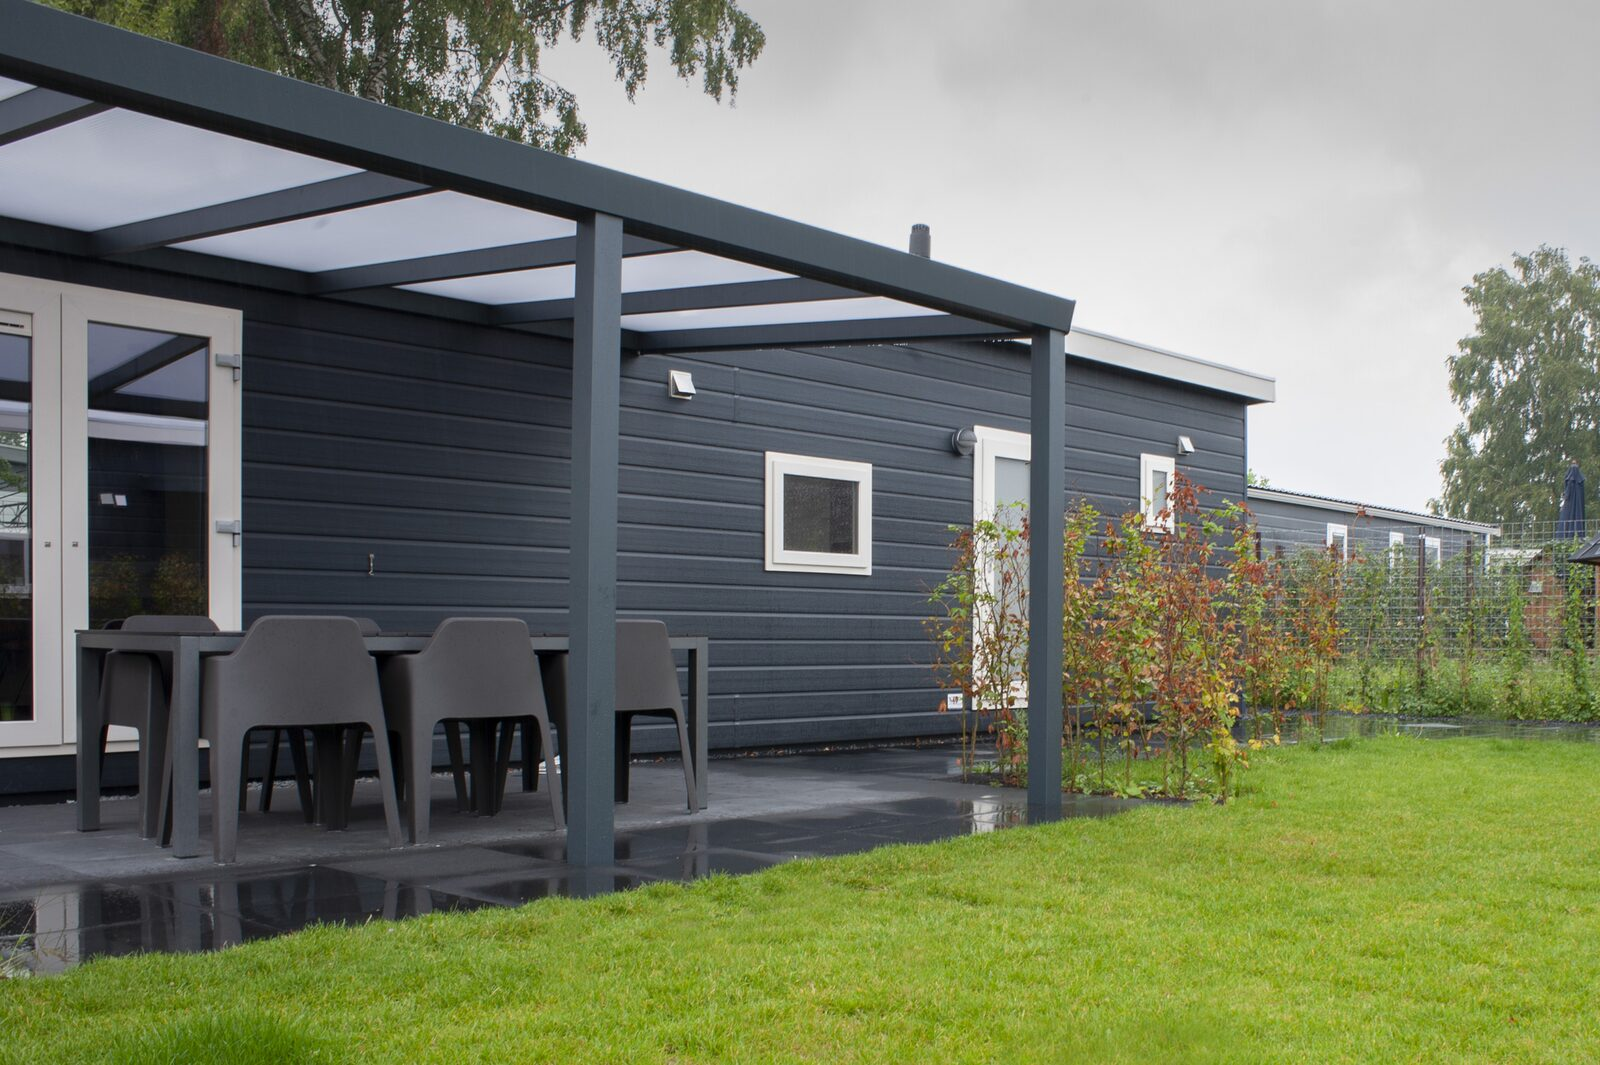 6 + 6 persoons Veluwelodge XL met grillhuis